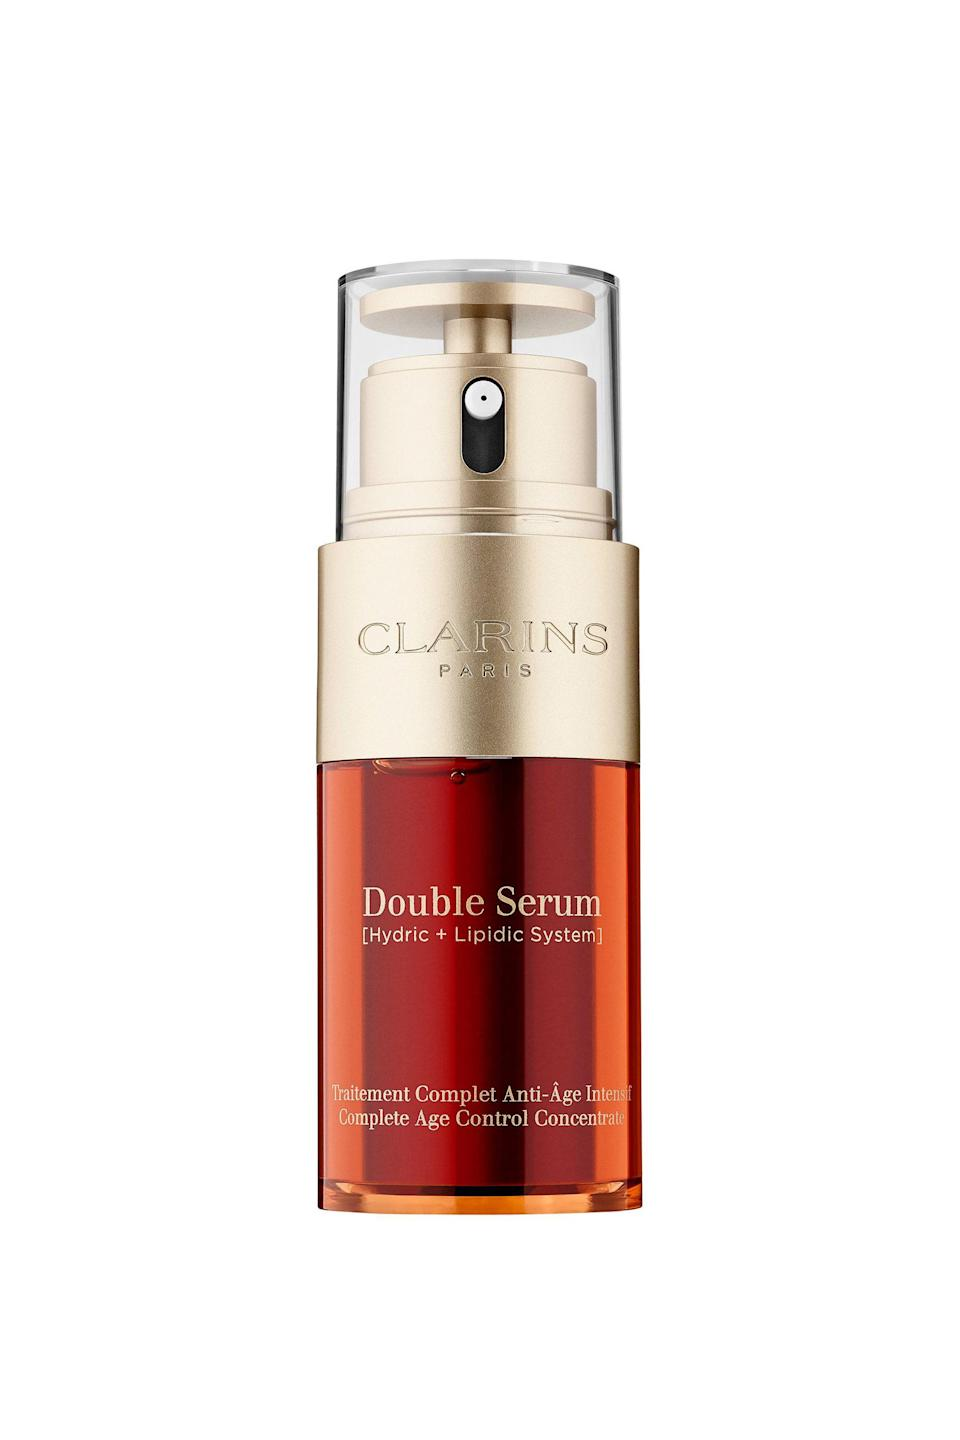 "<p><strong>Clarins</strong></p><p>saksfifthavenue.com</p><p><strong>$89.00</strong></p><p><a href=""https://go.redirectingat.com?id=74968X1596630&url=https%3A%2F%2Fwww.saksfifthavenue.com%2Fsaks%2Fproduct%2F0400095657393&sref=https%3A%2F%2Fwww.redbookmag.com%2Fbeauty%2Fg34658814%2Fface-serum%2F"" rel=""nofollow noopener"" target=""_blank"" data-ylk=""slk:Shop Now"" class=""link rapid-noclick-resp"">Shop Now</a></p><p>Some of the best plant-based extracts are water-soluble. Others can only thrive in oil-based solutions. The dual-chambers in this handy vial makes space for both types—20 botanical actives, to be exact, including turmeric, oats, and kiwi. </p><p>If your skin is extra dry, go for a power shot. On oilier days, dial the adjustable nozzle back to a smaller dosage.</p>"